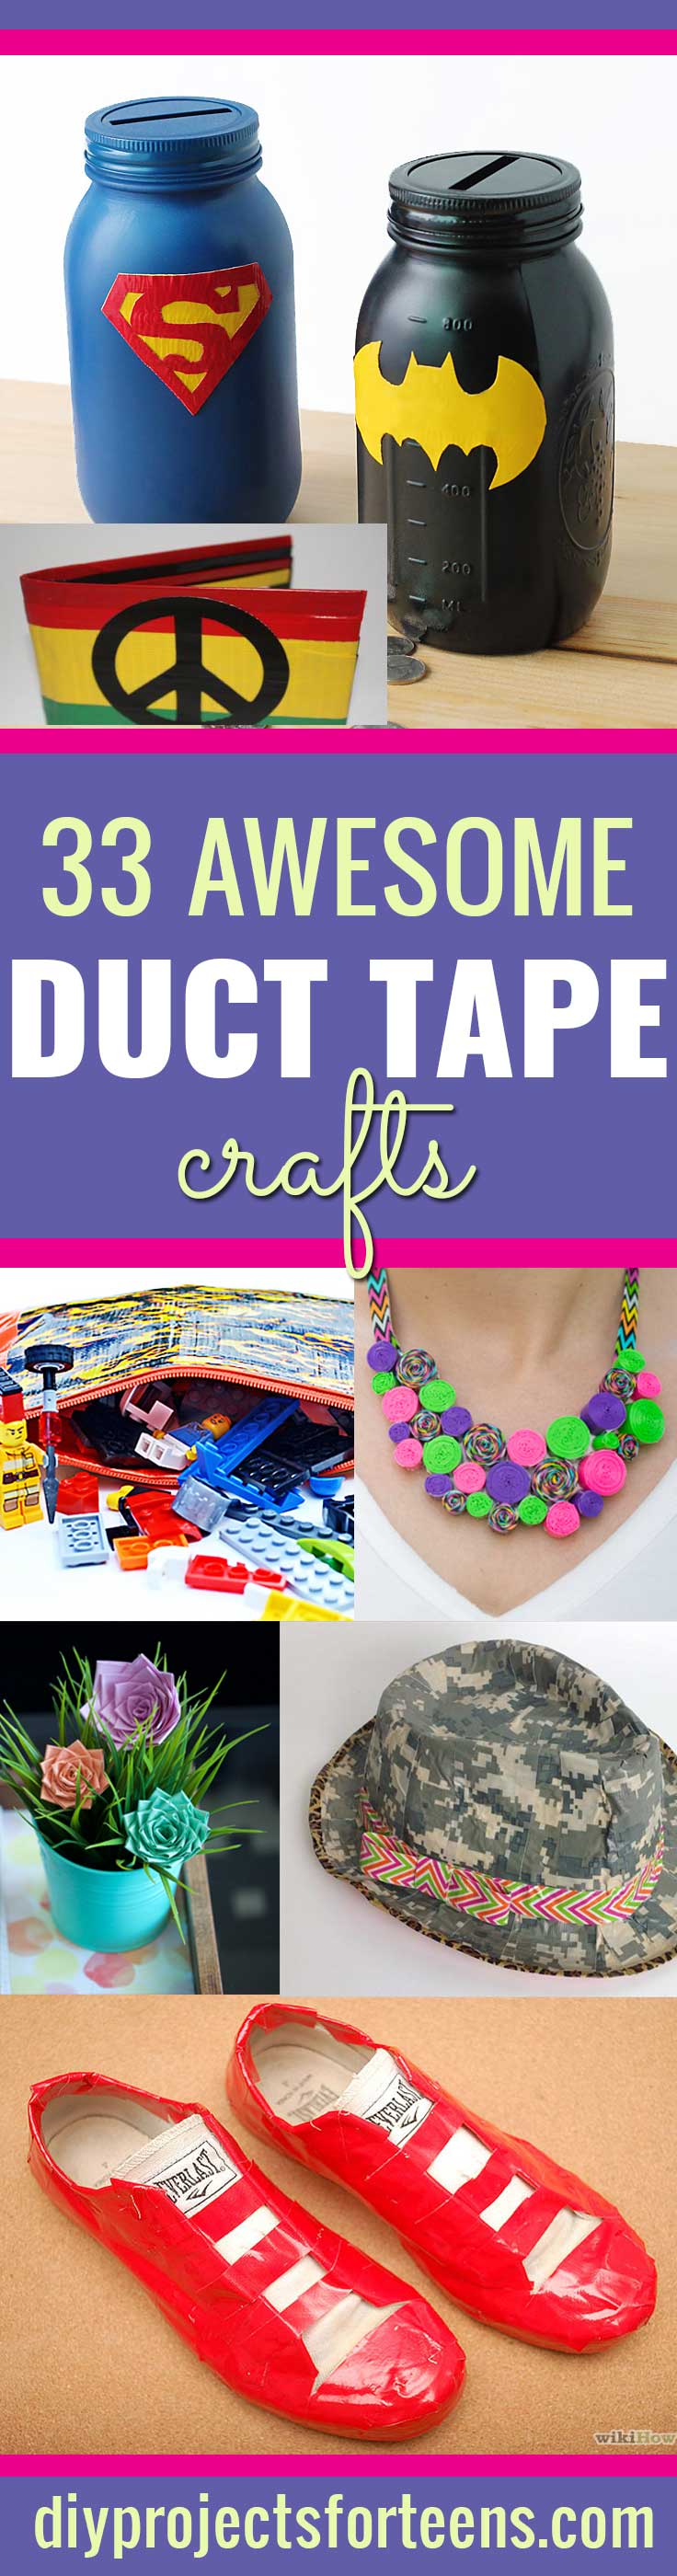 Duct Tape Crafts Ideas for DIY Home Decor, Fashion and Accessories | Cool DIY Projects for Teens, Tweens and Teenagers #teencrafts #kidscrafts #ducttape #cheapcrafts /